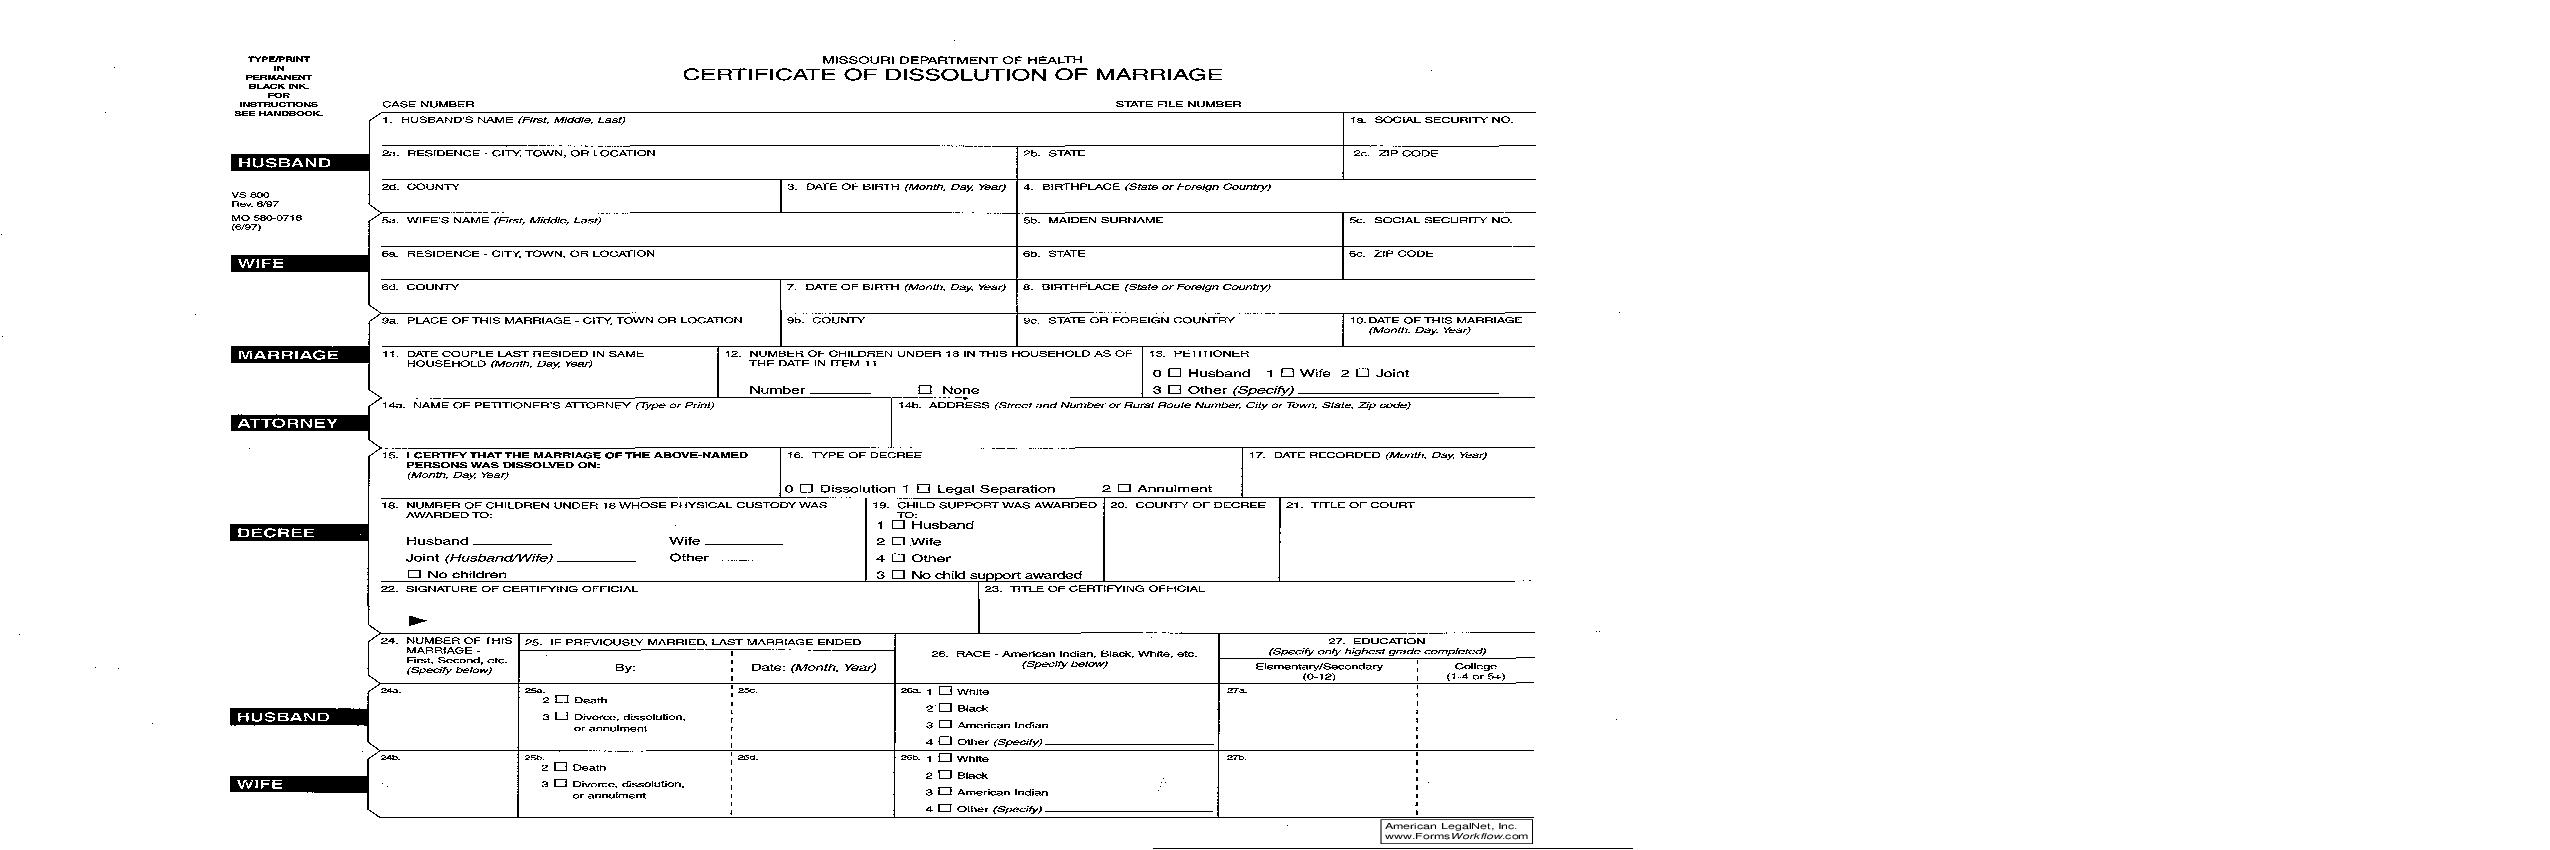 Certificate of Dissolution of Marriage | Pdf Fpdf Doc Docx | Missouri